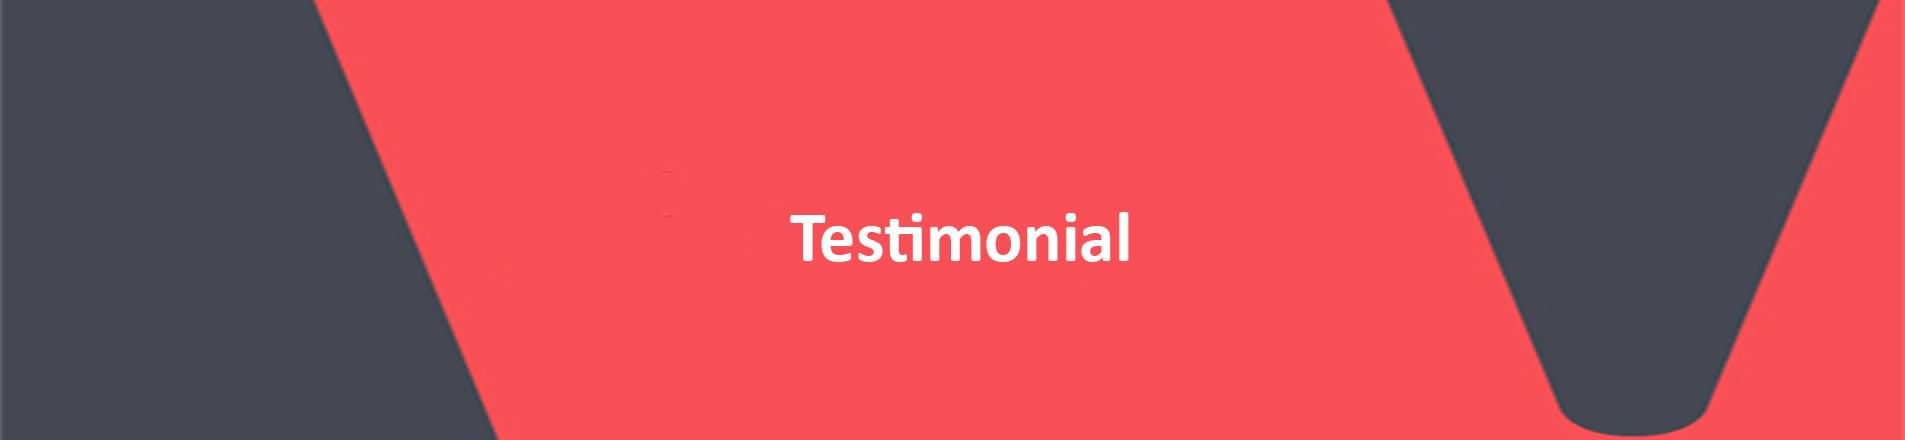 red banner with white text reading testimonial